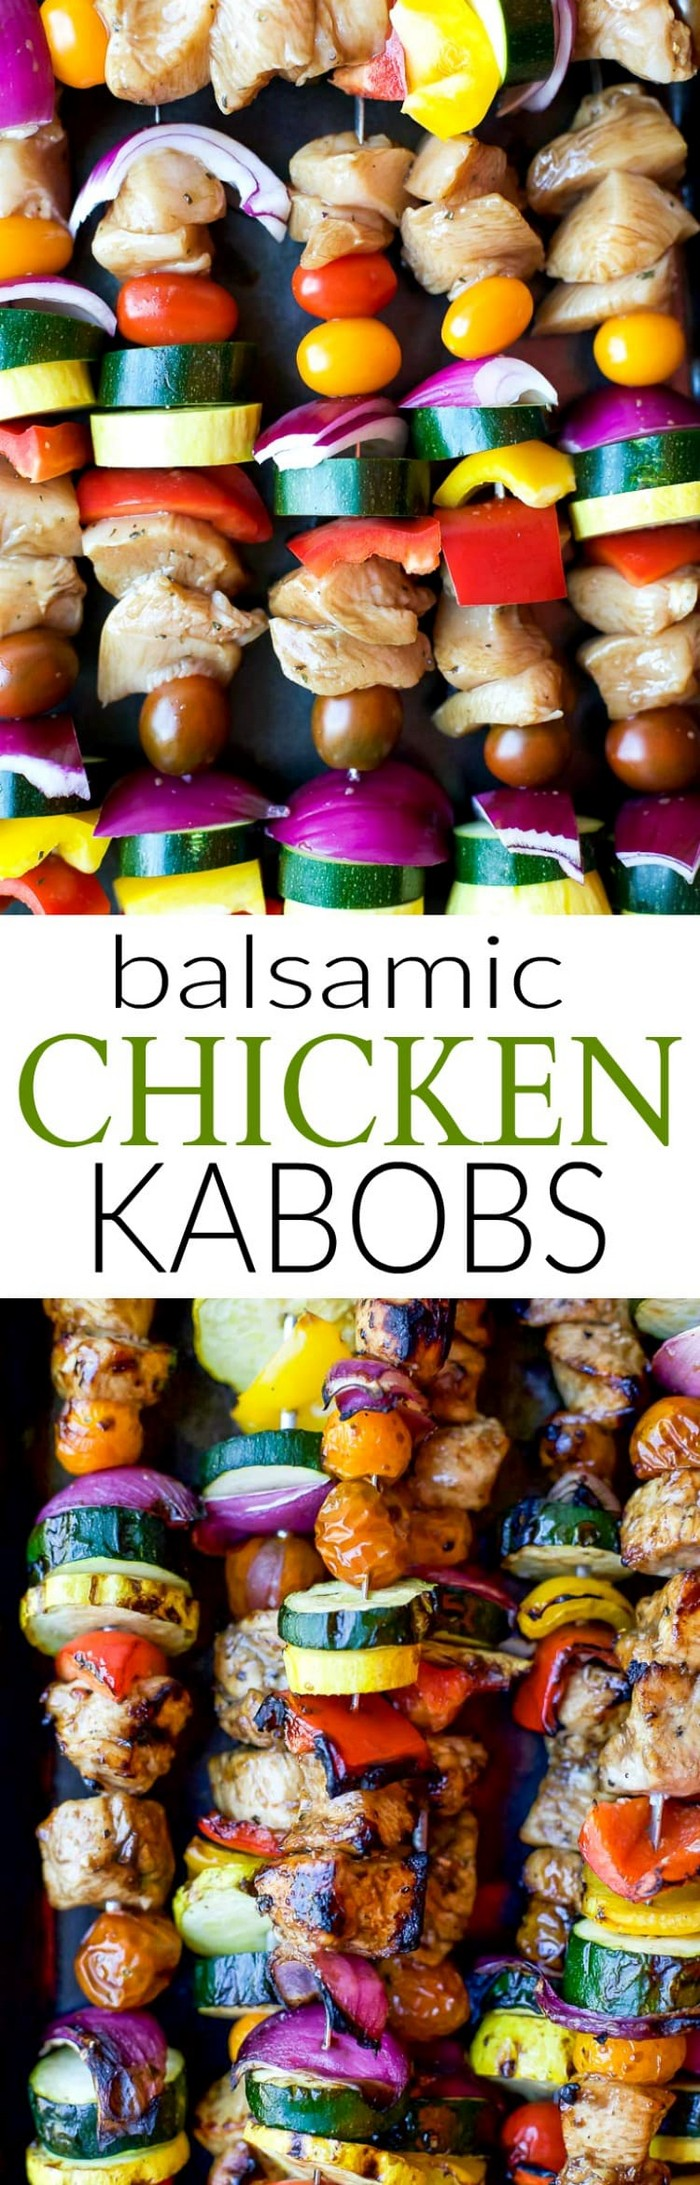 Balsamic Chicken Kabobs Recipe